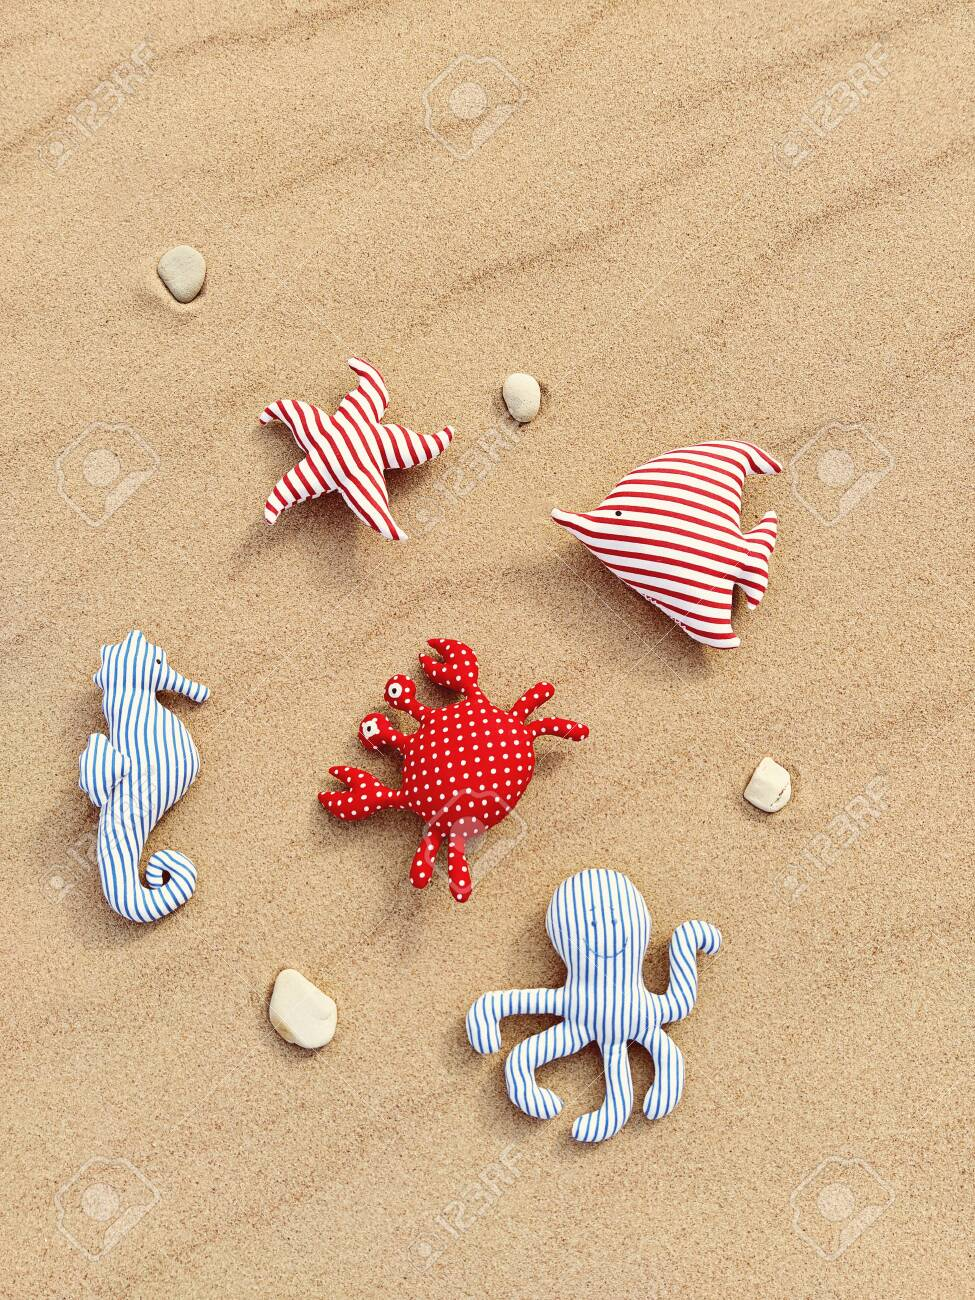 Handmade Fabric Toys On Sandy Background Baby Educational Toys Stock Photo Picture And Royalty Free Image Image 150032786